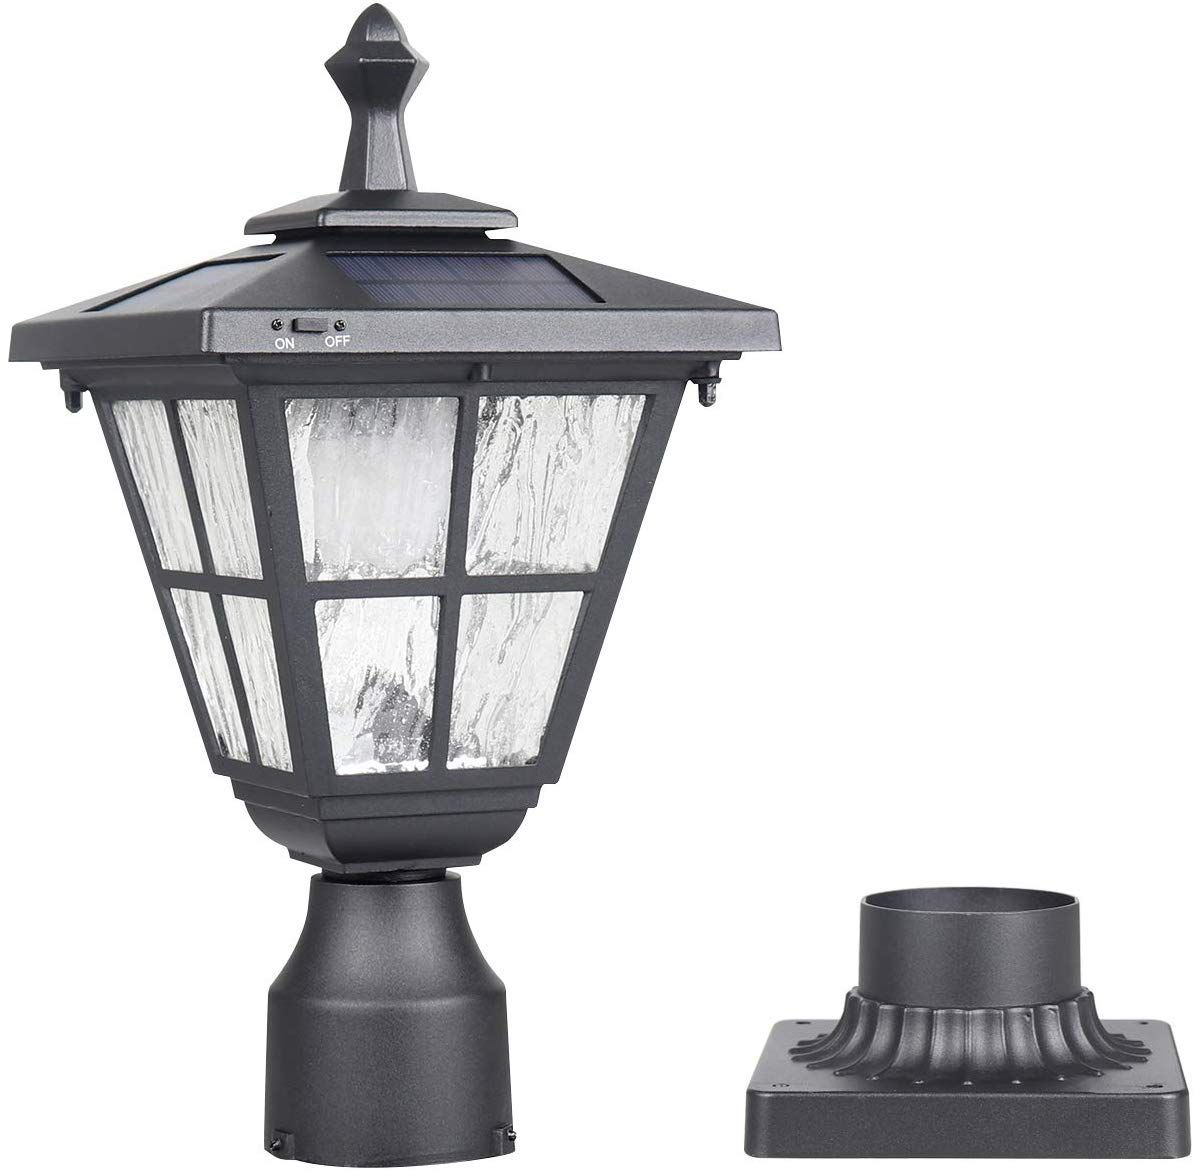 Kemeco St4325q Post Solar Light Cast Aluminum Led Lamp Fixture With 3 Inch Fitter Base For Outdoor Garden Post Pole Solar Post Lights Post Lights Solar Lights